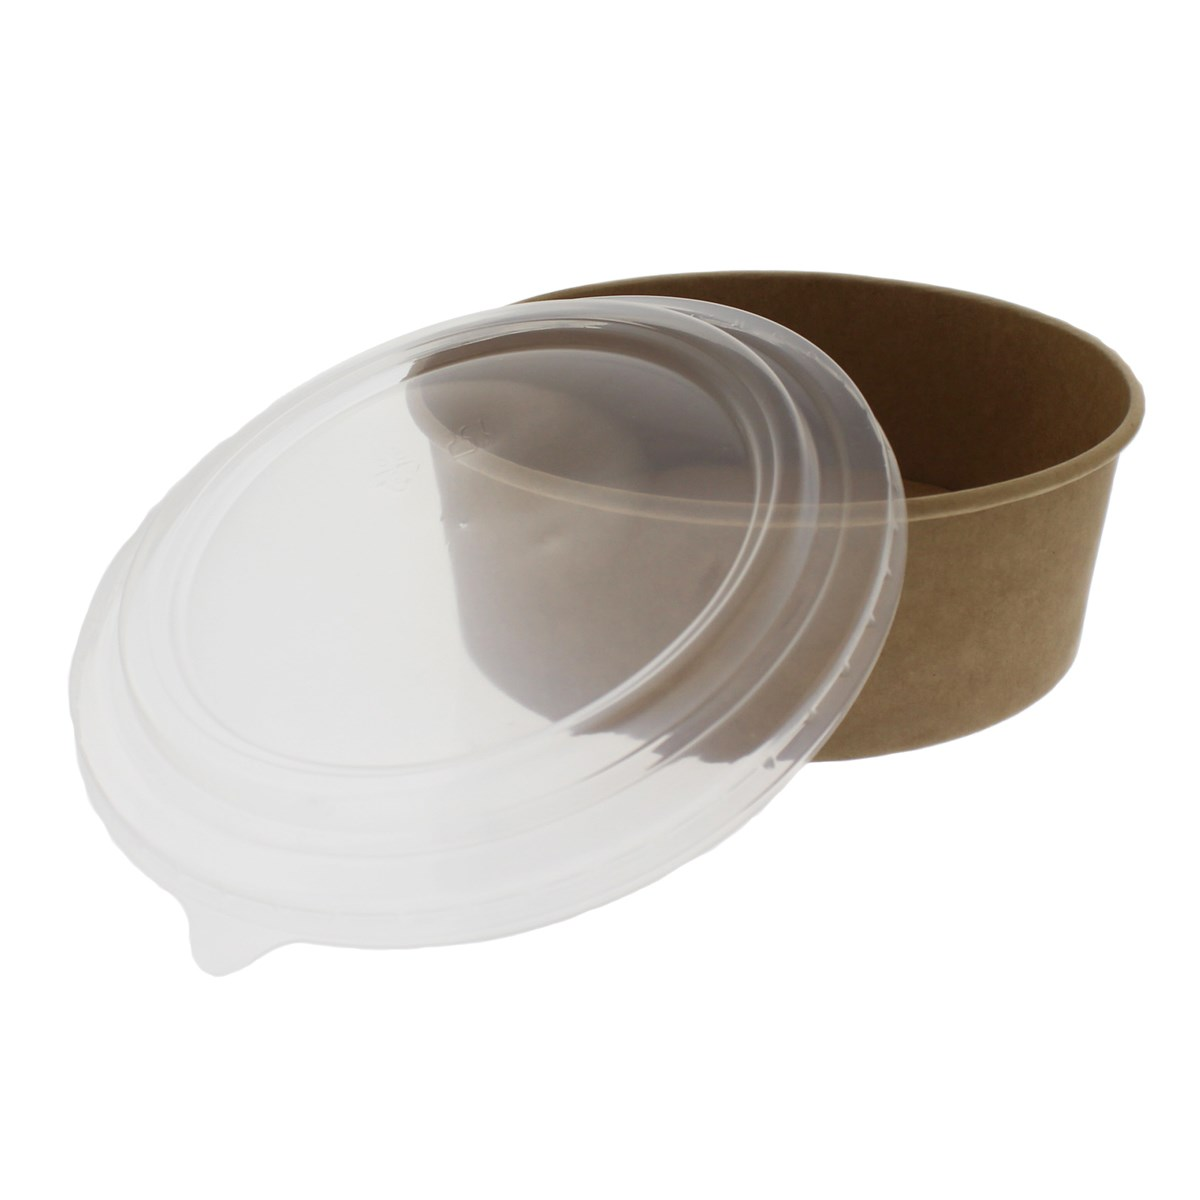 Salad Bowl Lids - 1000ml - 45 Per Pack